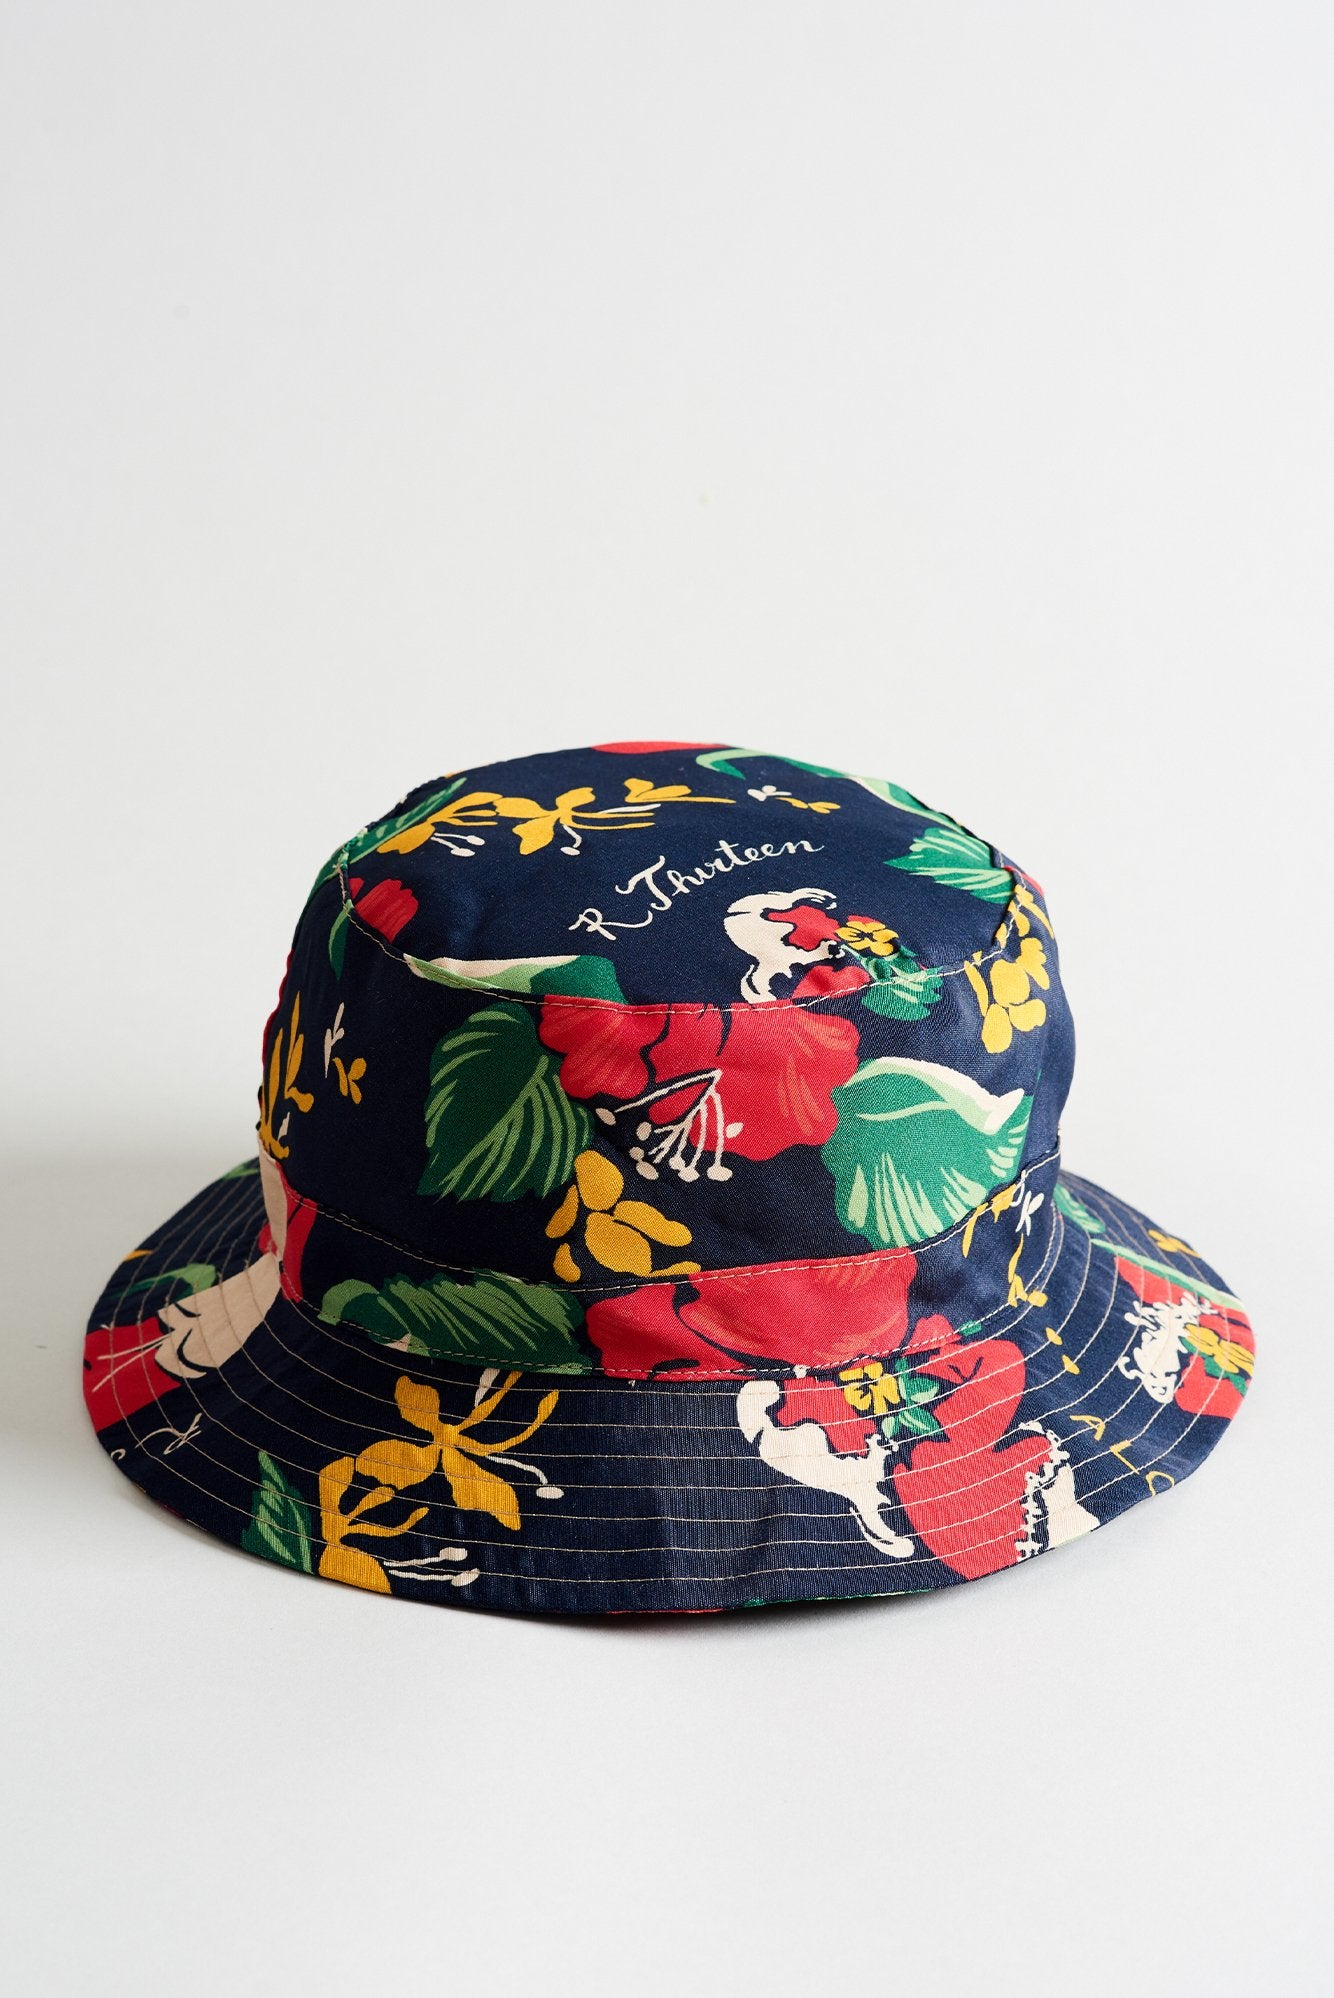 R13 Bucket Hat - Red Lady